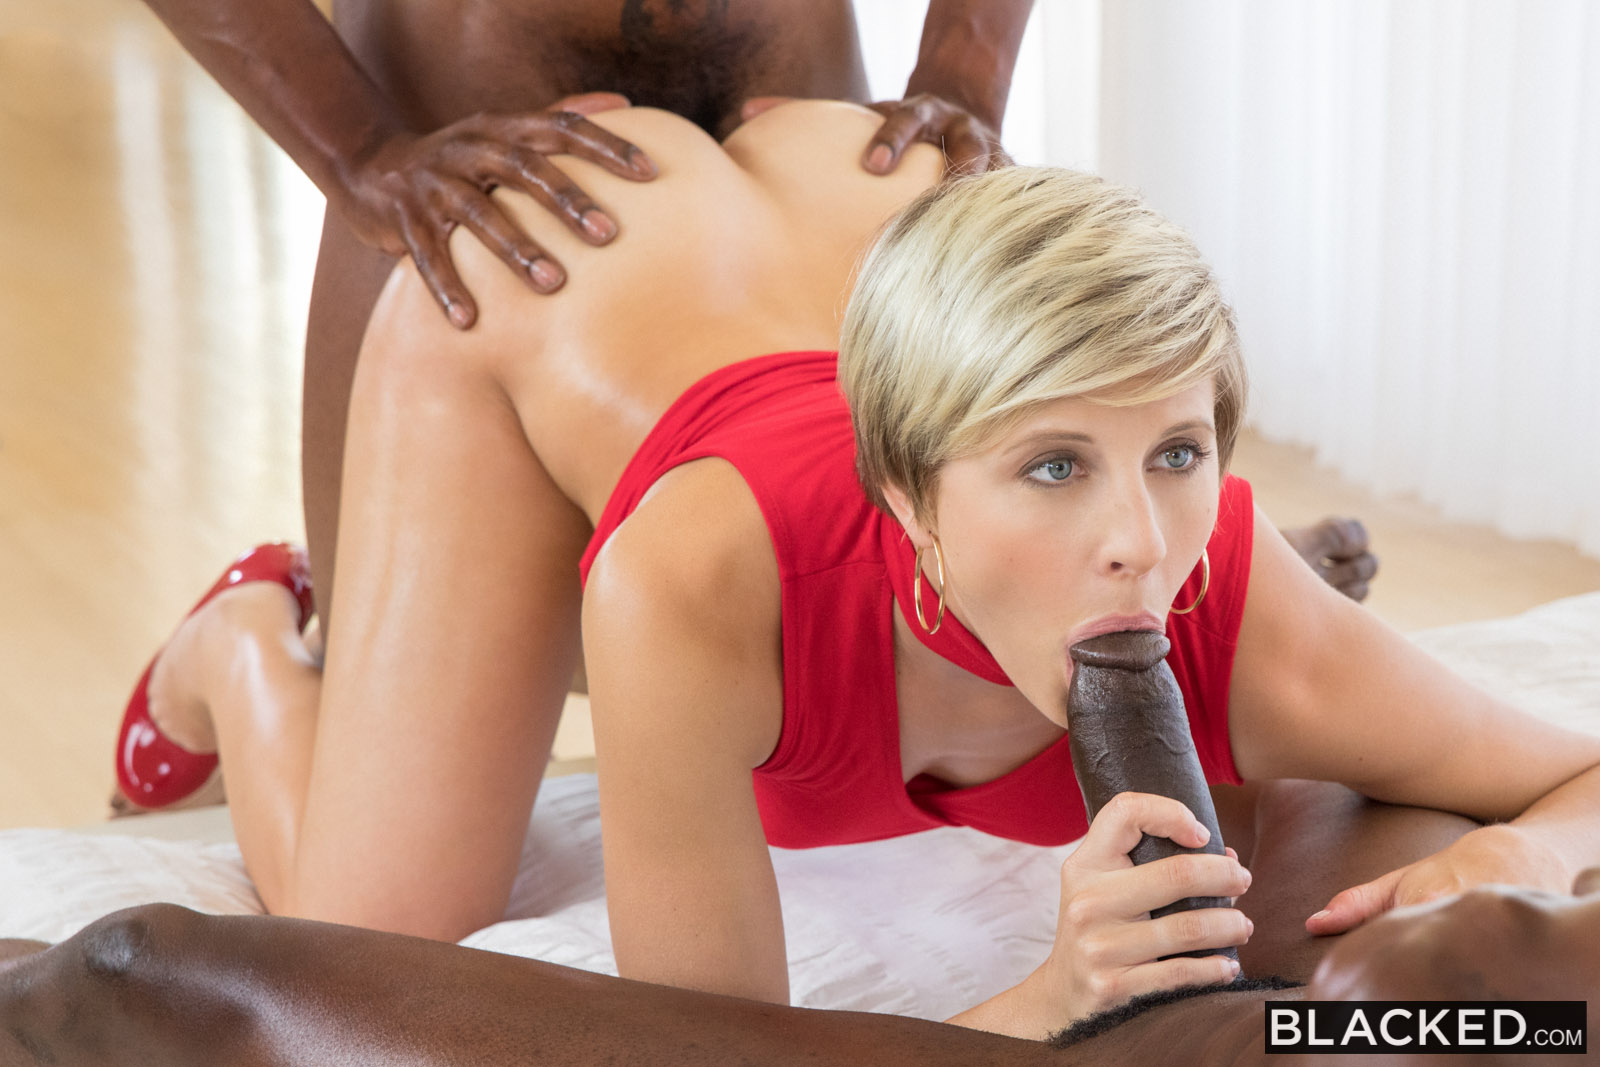 Blacked curvy latina gets dominated by a famous rapper 9